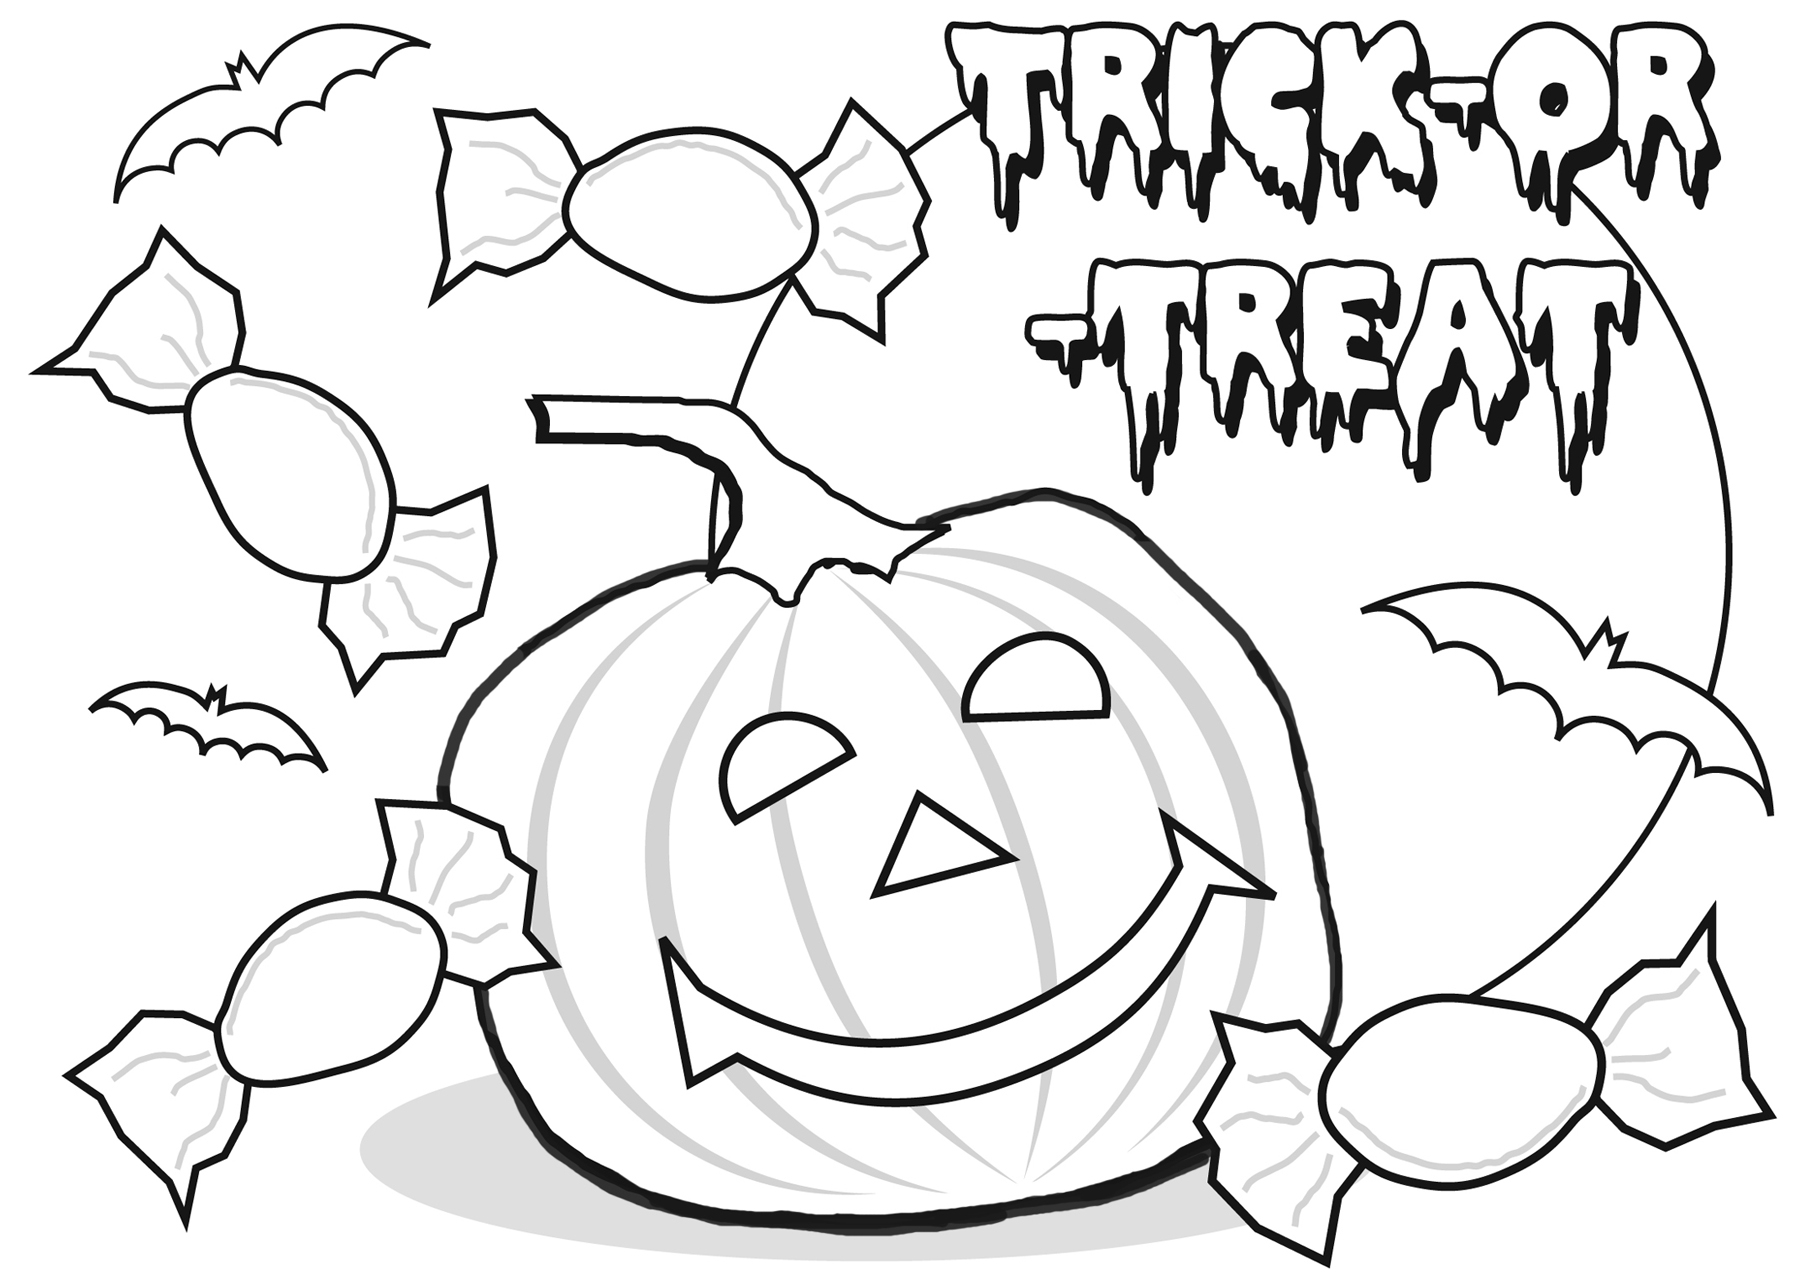 1800x1285 happy halloween pumpkin coloring pages 1800x1285 happy halloween pumpkin coloring pages 1005x1300 immediately jack o lantern